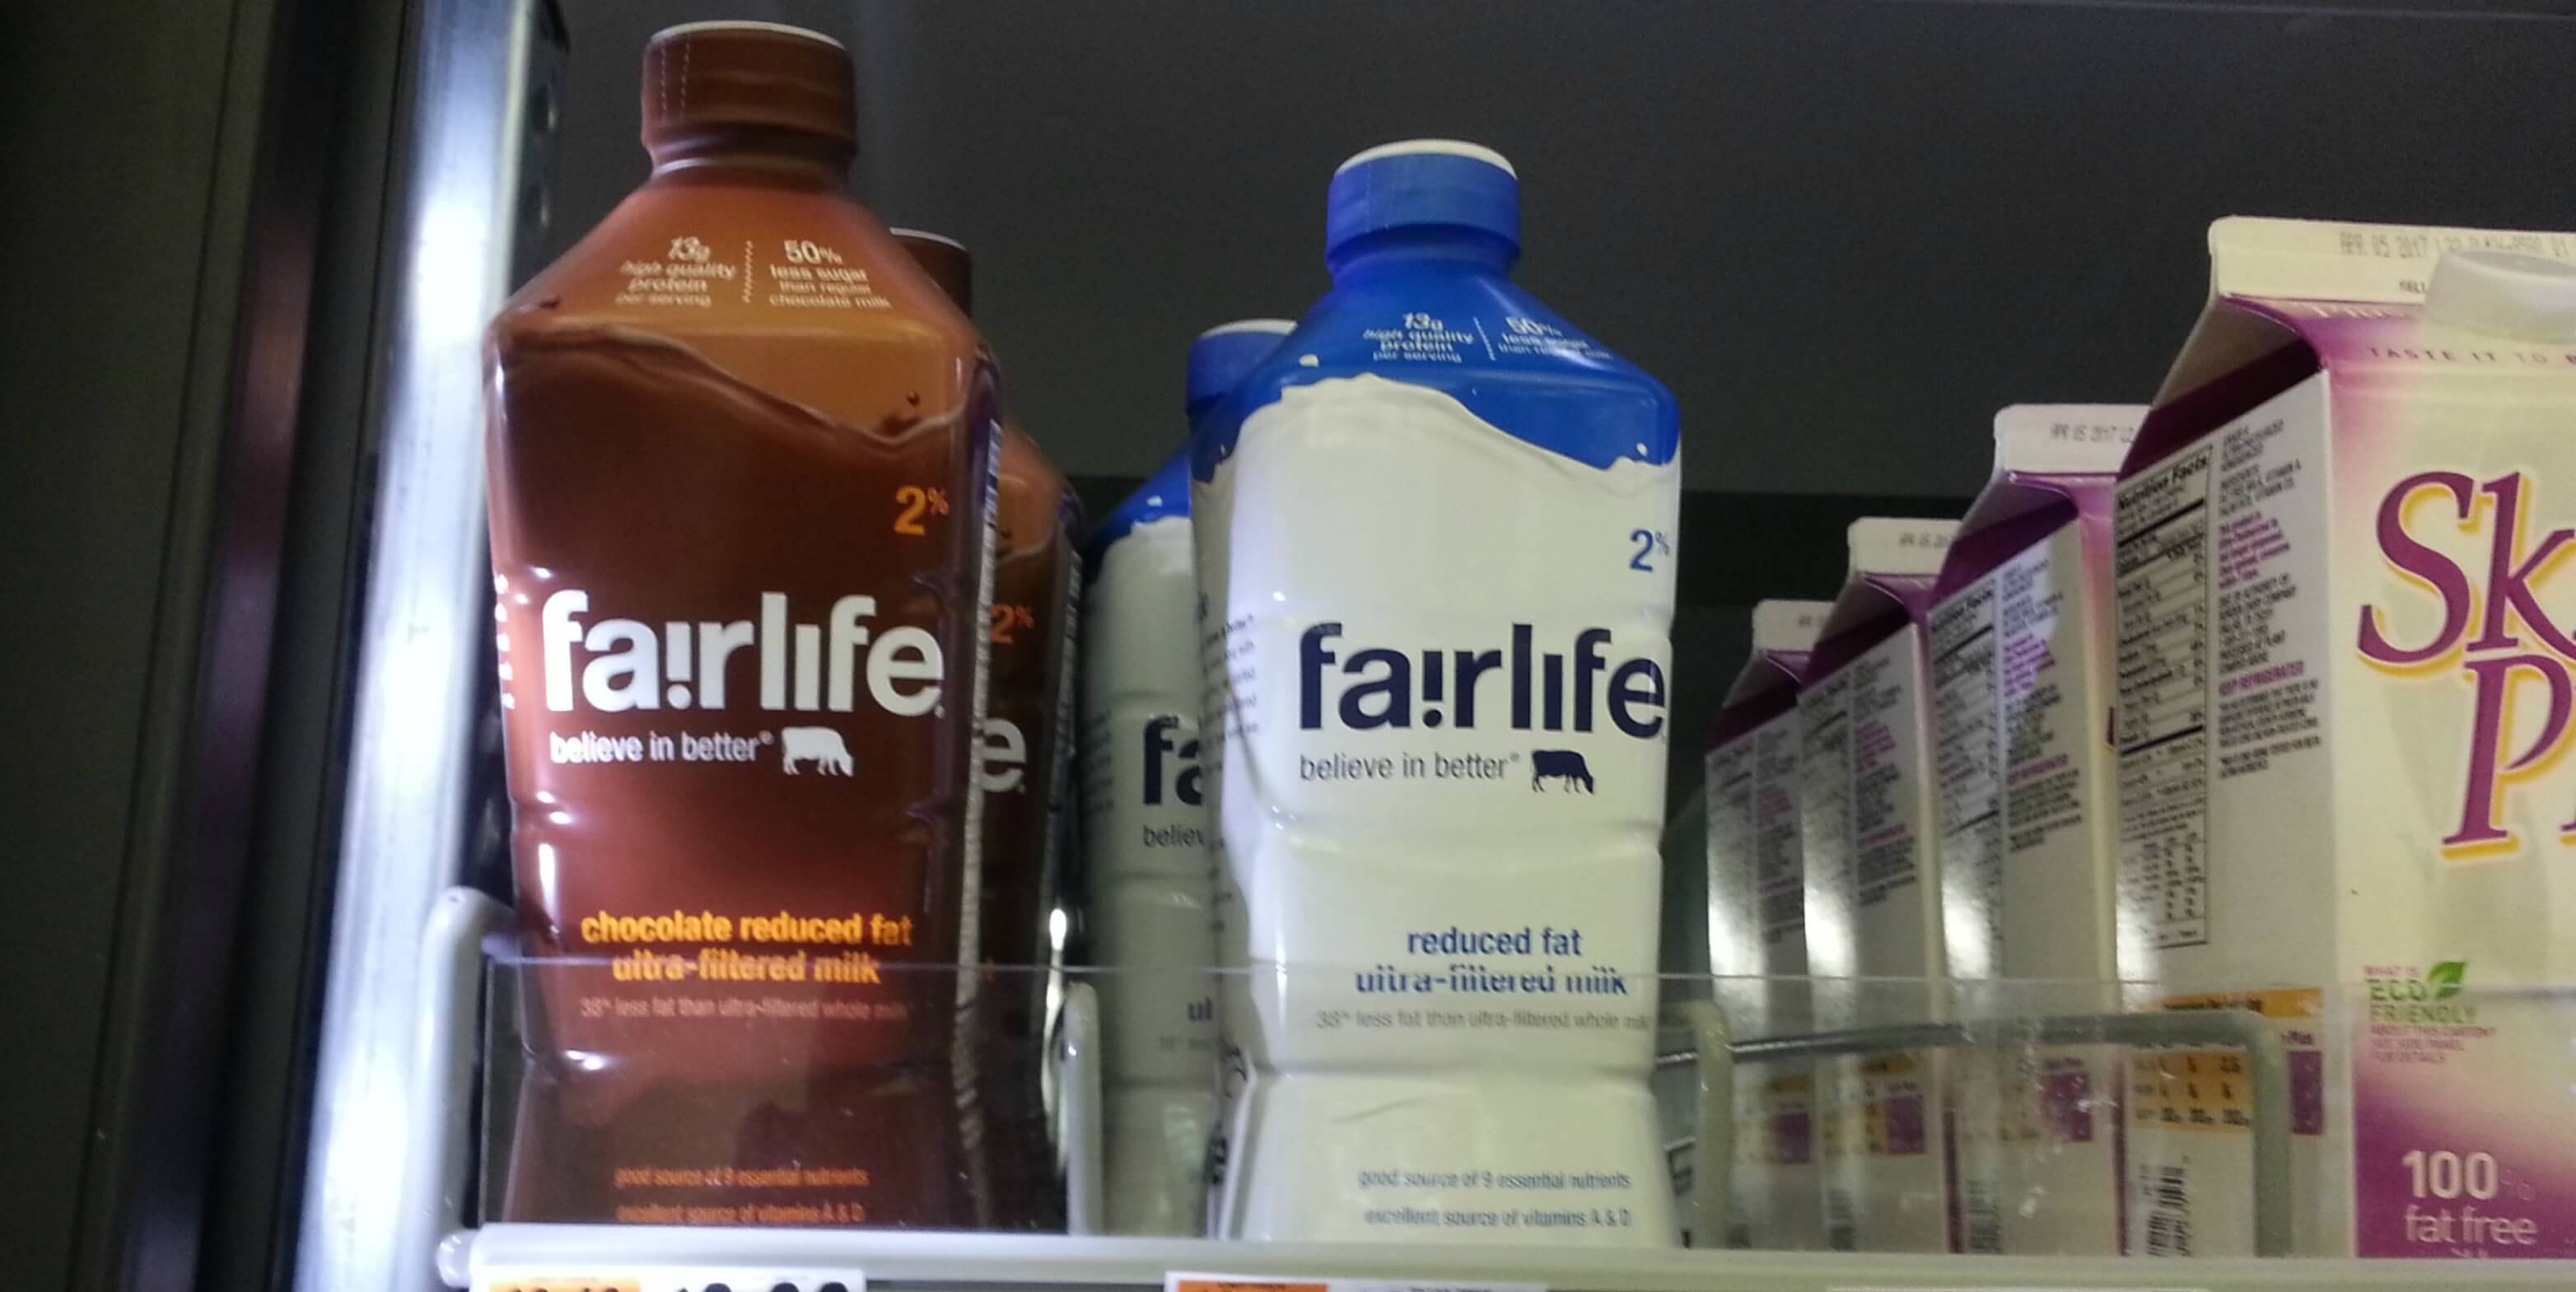 New Coupon! Fairlife Ultra Filtered Milk Only $1.50 at Stop & Shop ...